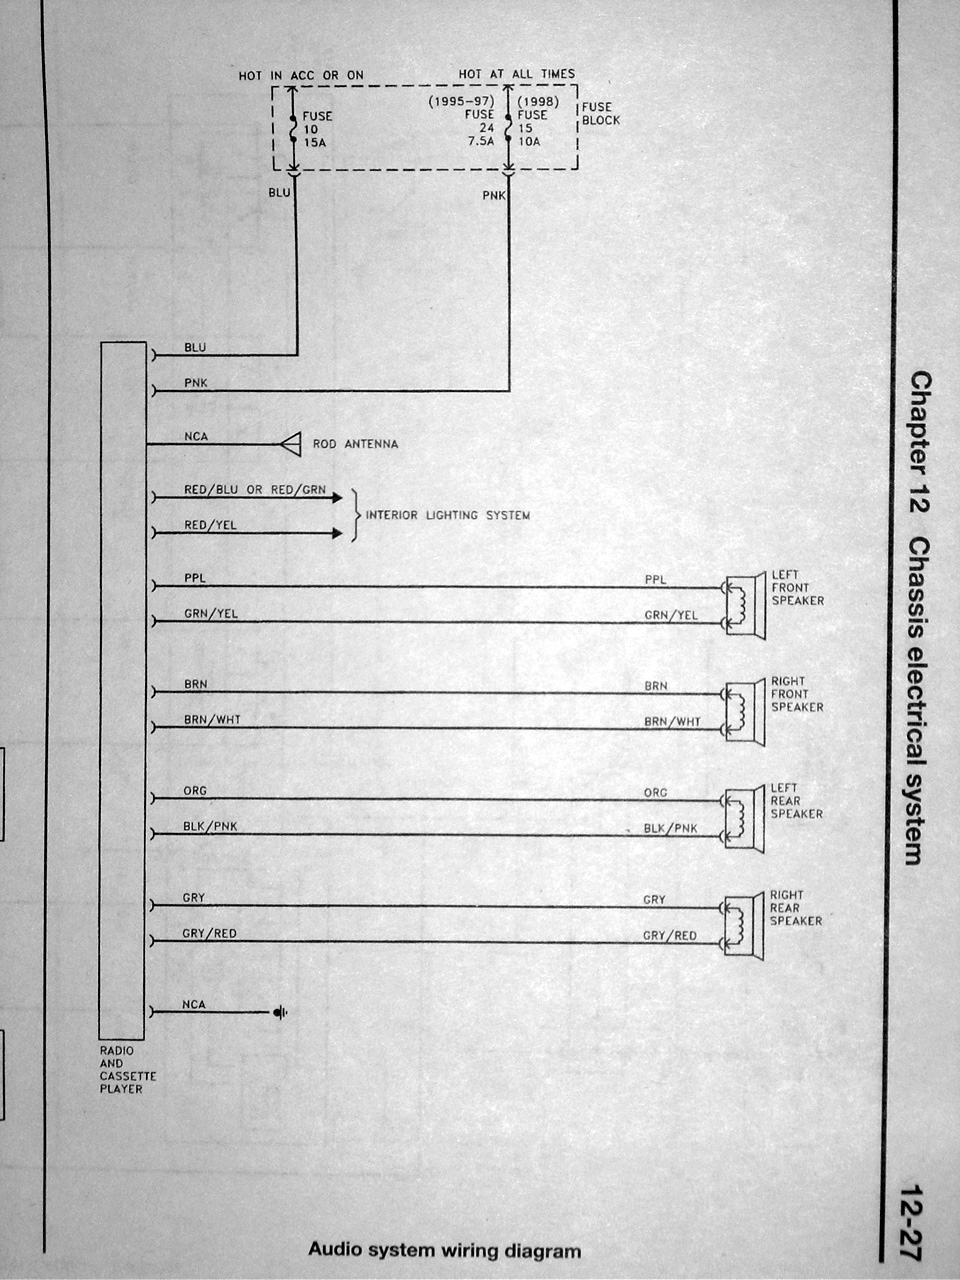 DSC01849 wiring diagram thread *useful info* nissan forum 2001 nissan xterra stereo wiring diagram at soozxer.org